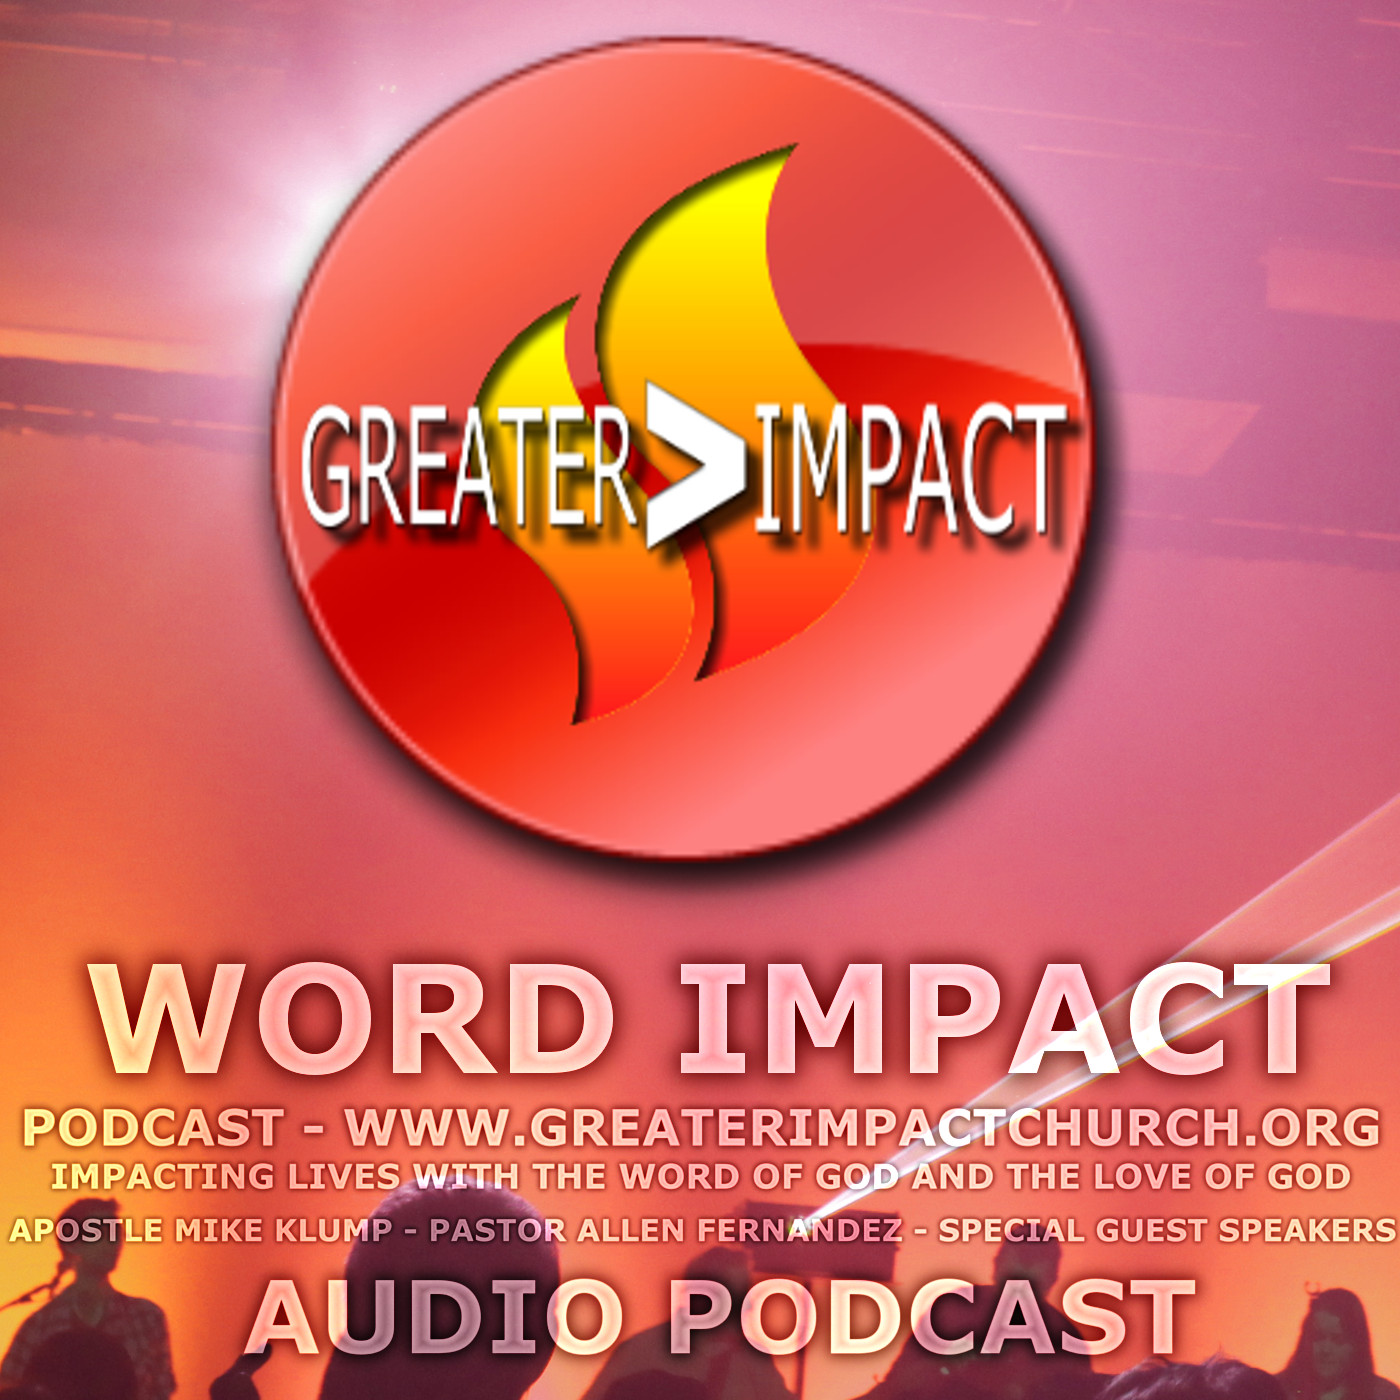 Word IMPACT podcast - Greater Impact Int'l. Church